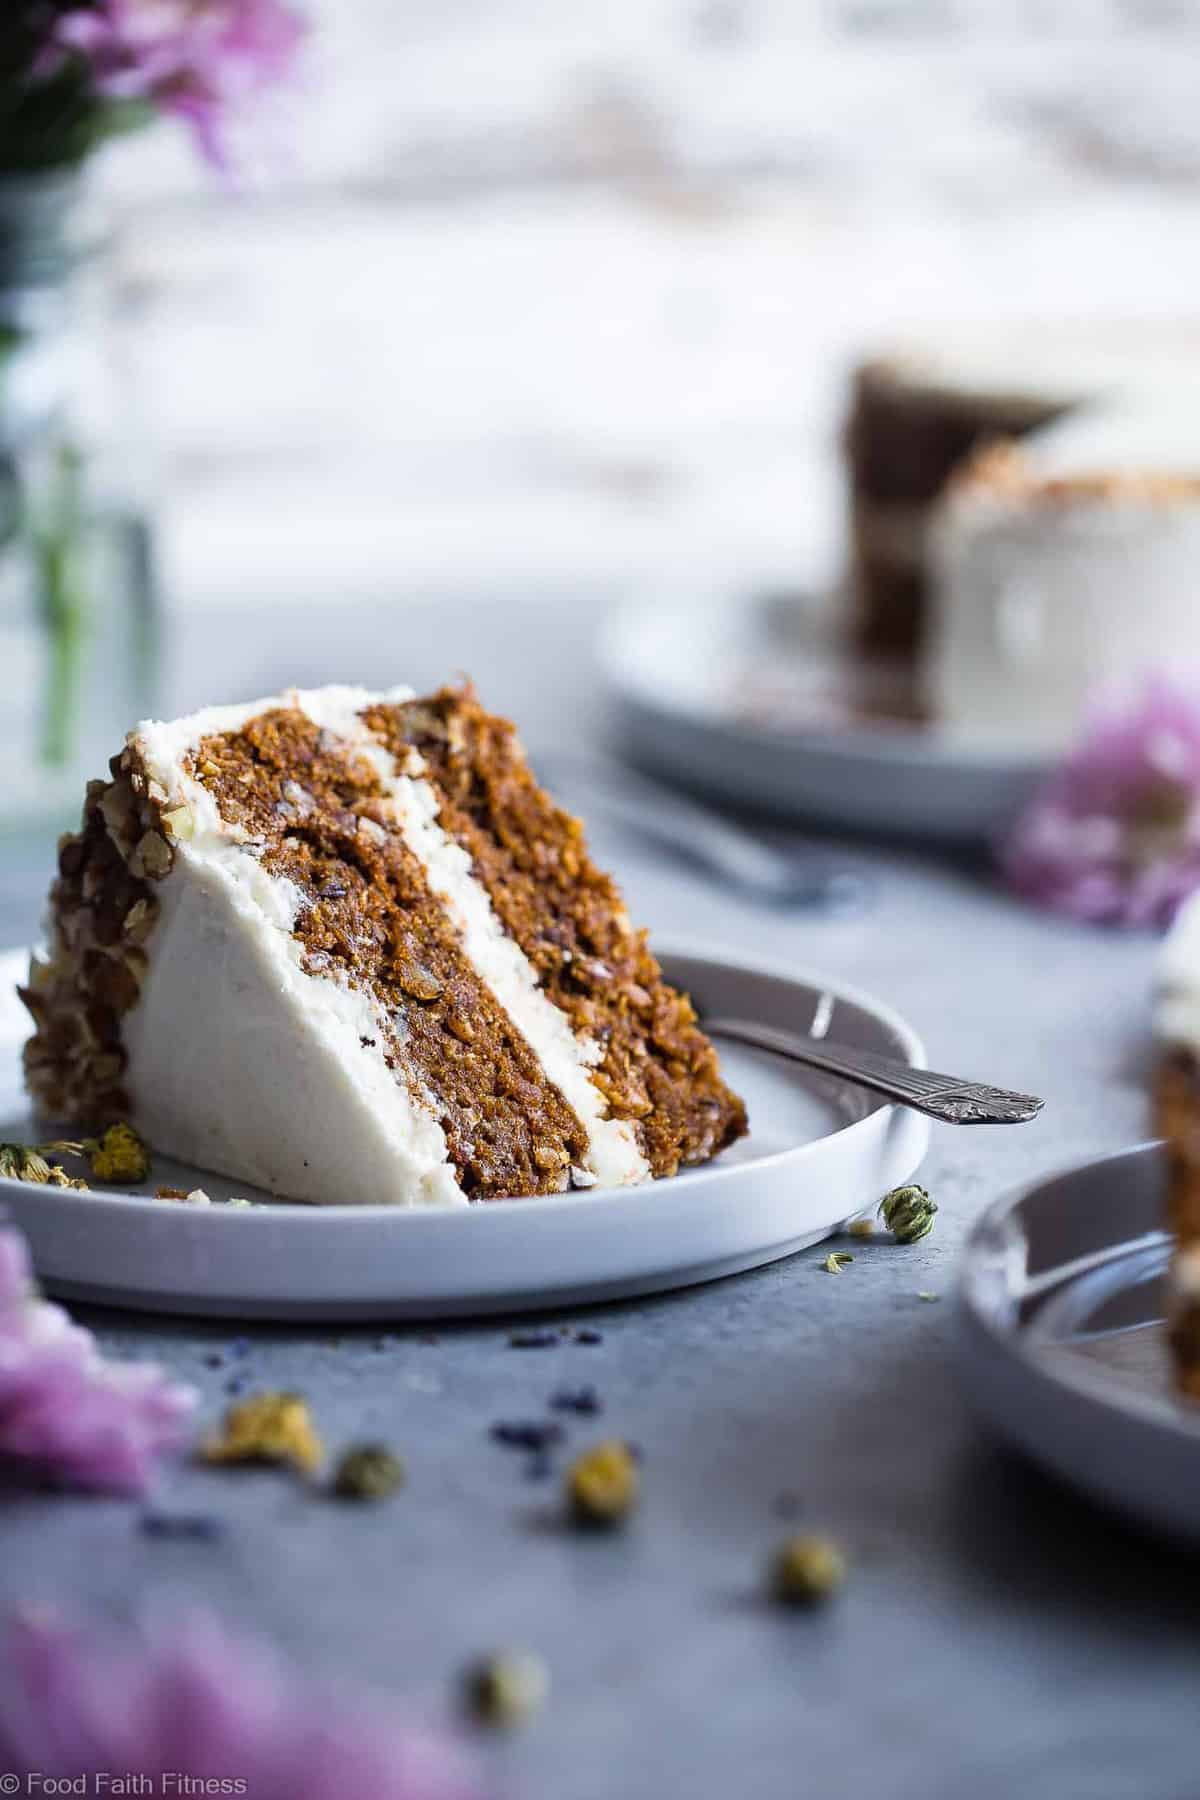 The BEST Gluten Free Vegan Carrot Cake